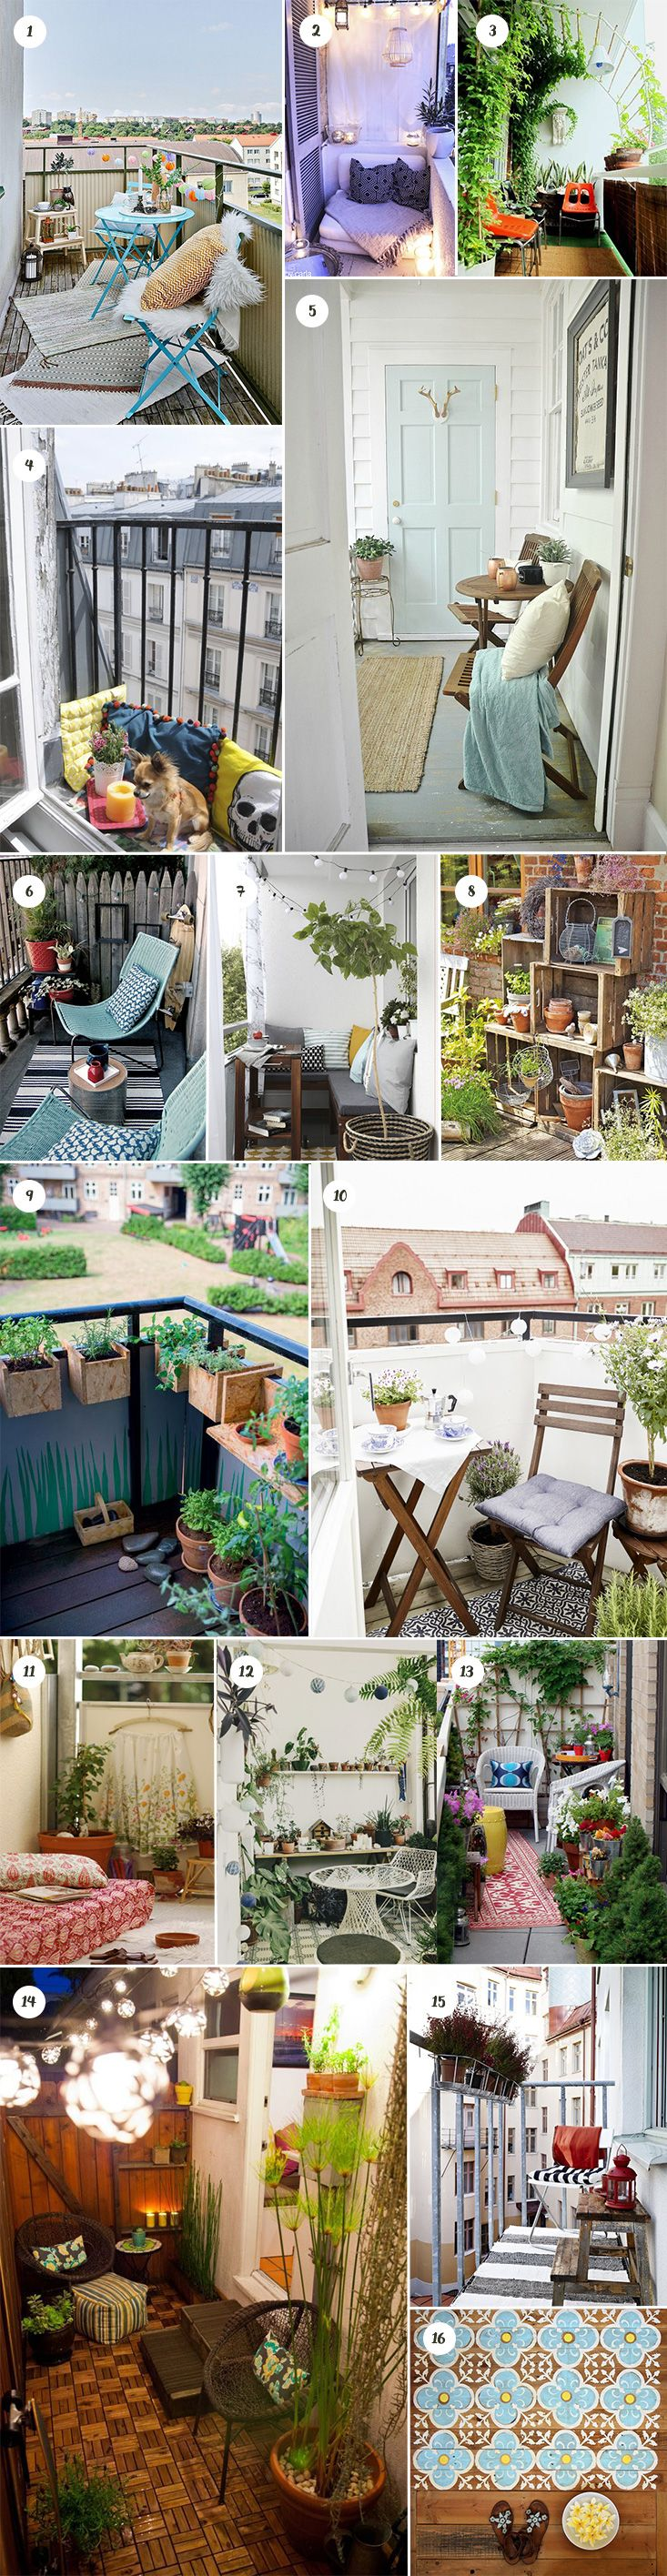 85 best studio petit appartement images on pinterest - Decoration petit balcon ...